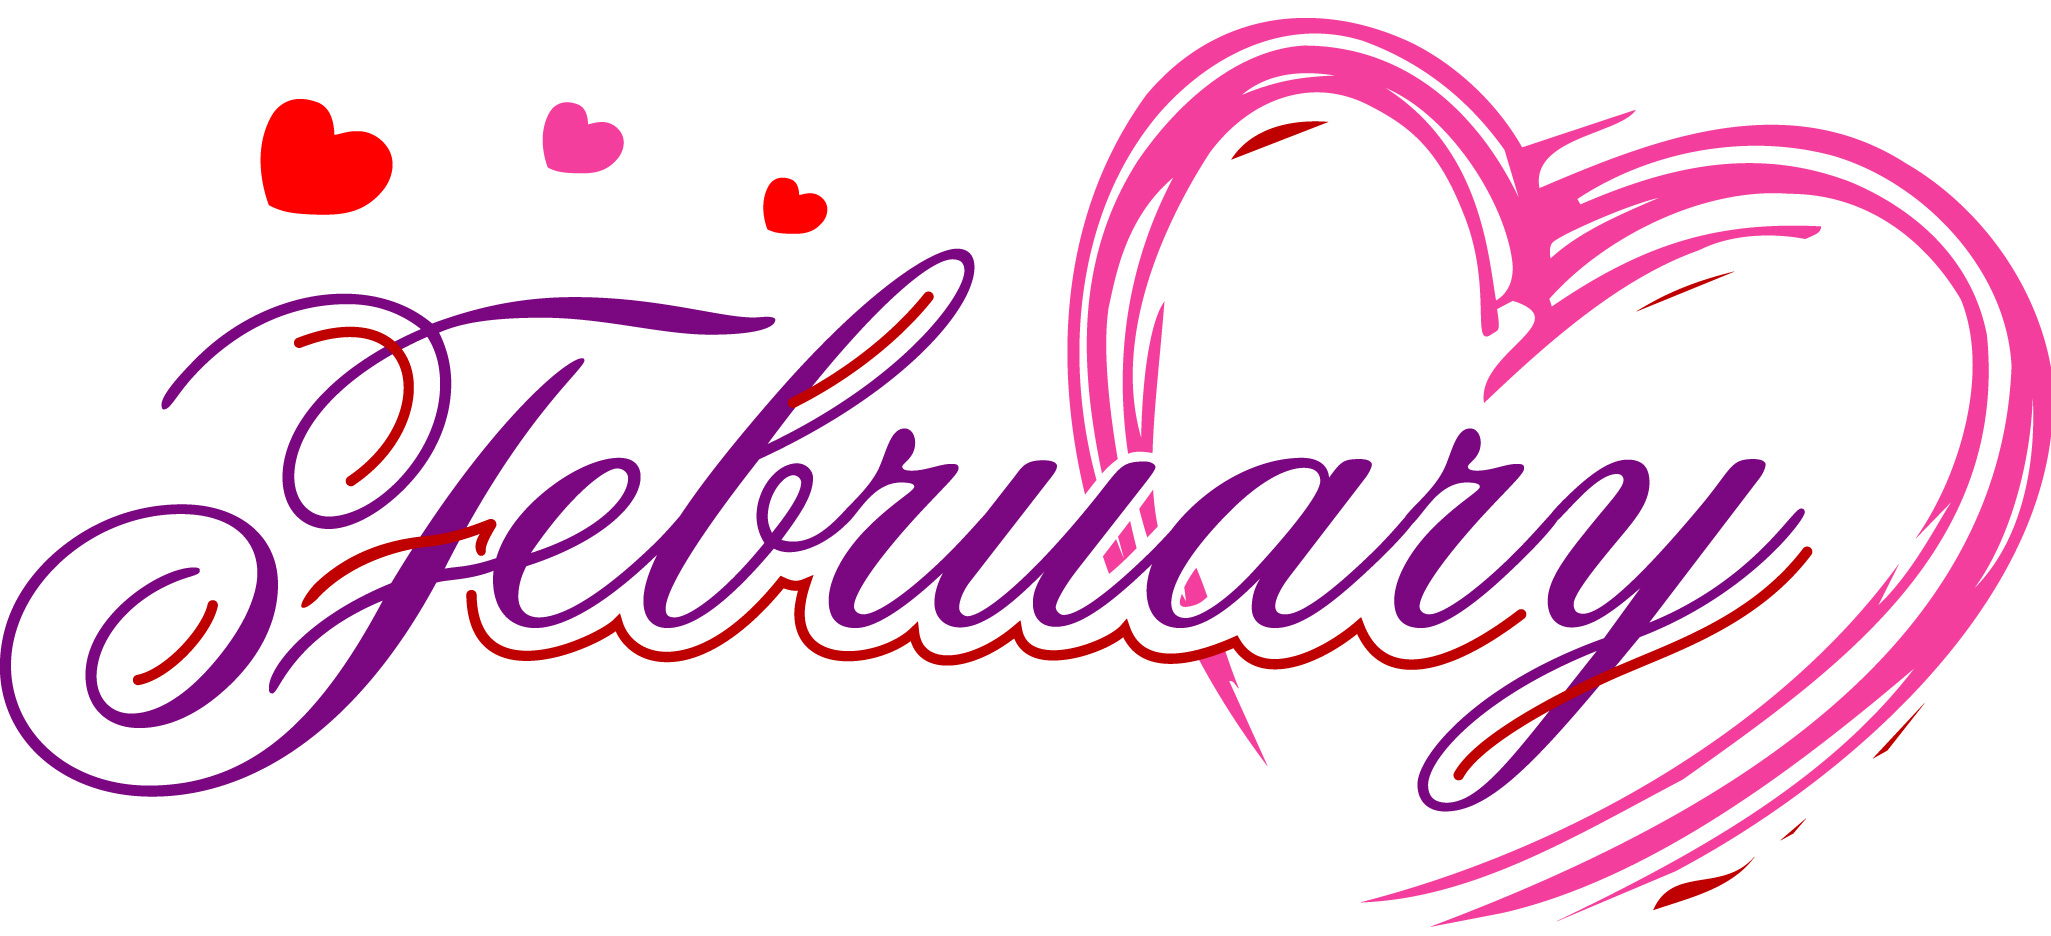 February clipart images png royalty free library February - Pictures, Images and Photos - ImageCrow png royalty free library